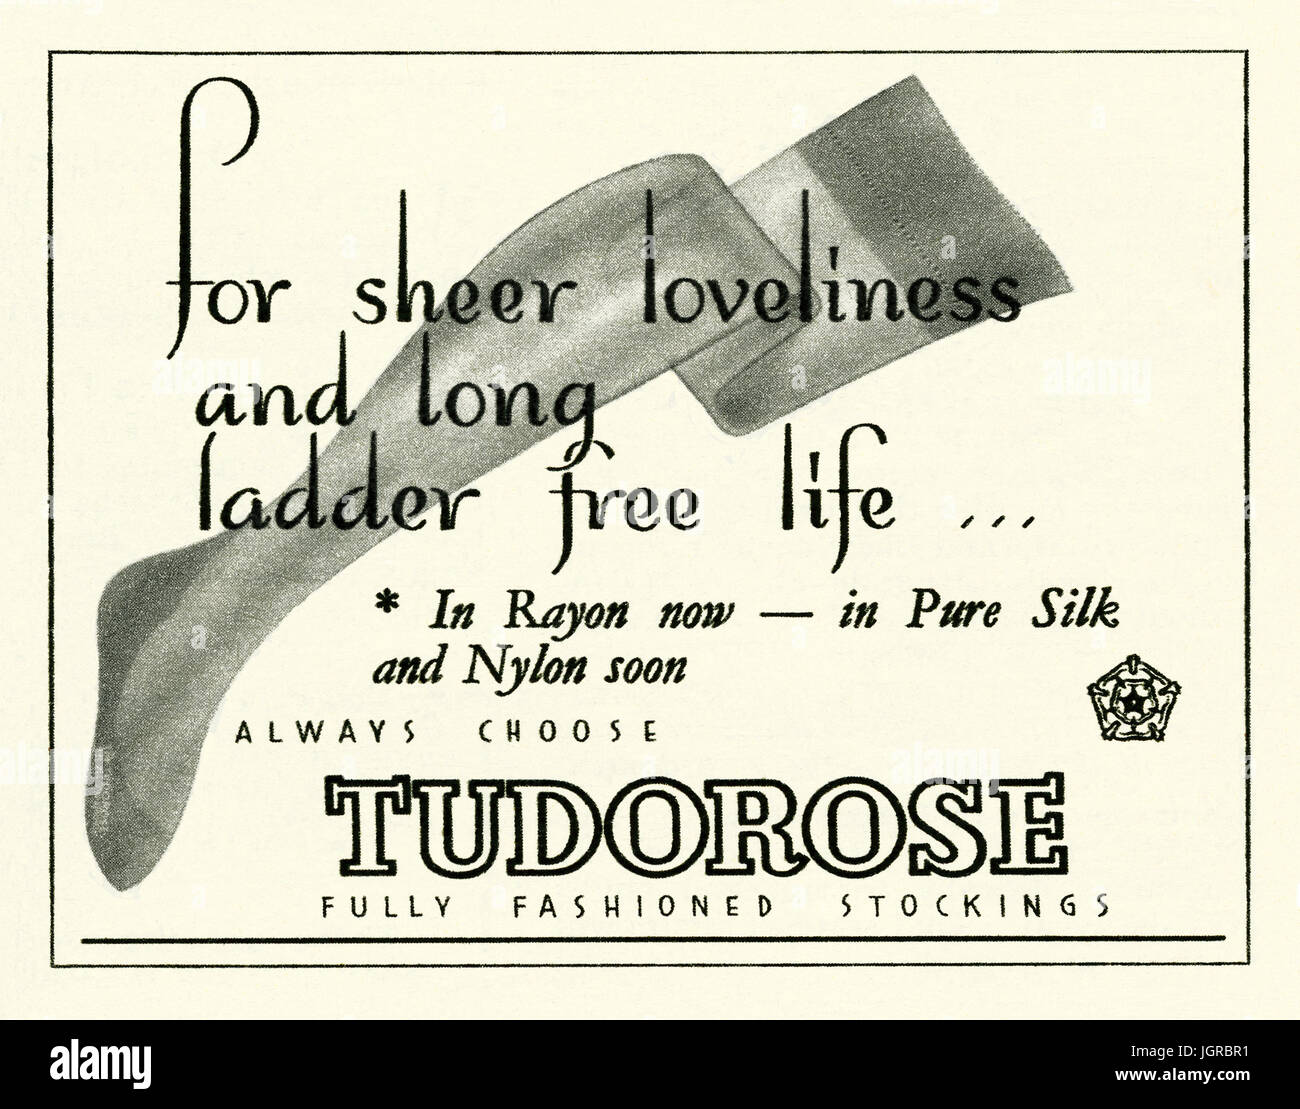 a36dcb5d1 An advert for Tudorose rayon stockings - it appeared in a magazine  published in the UK